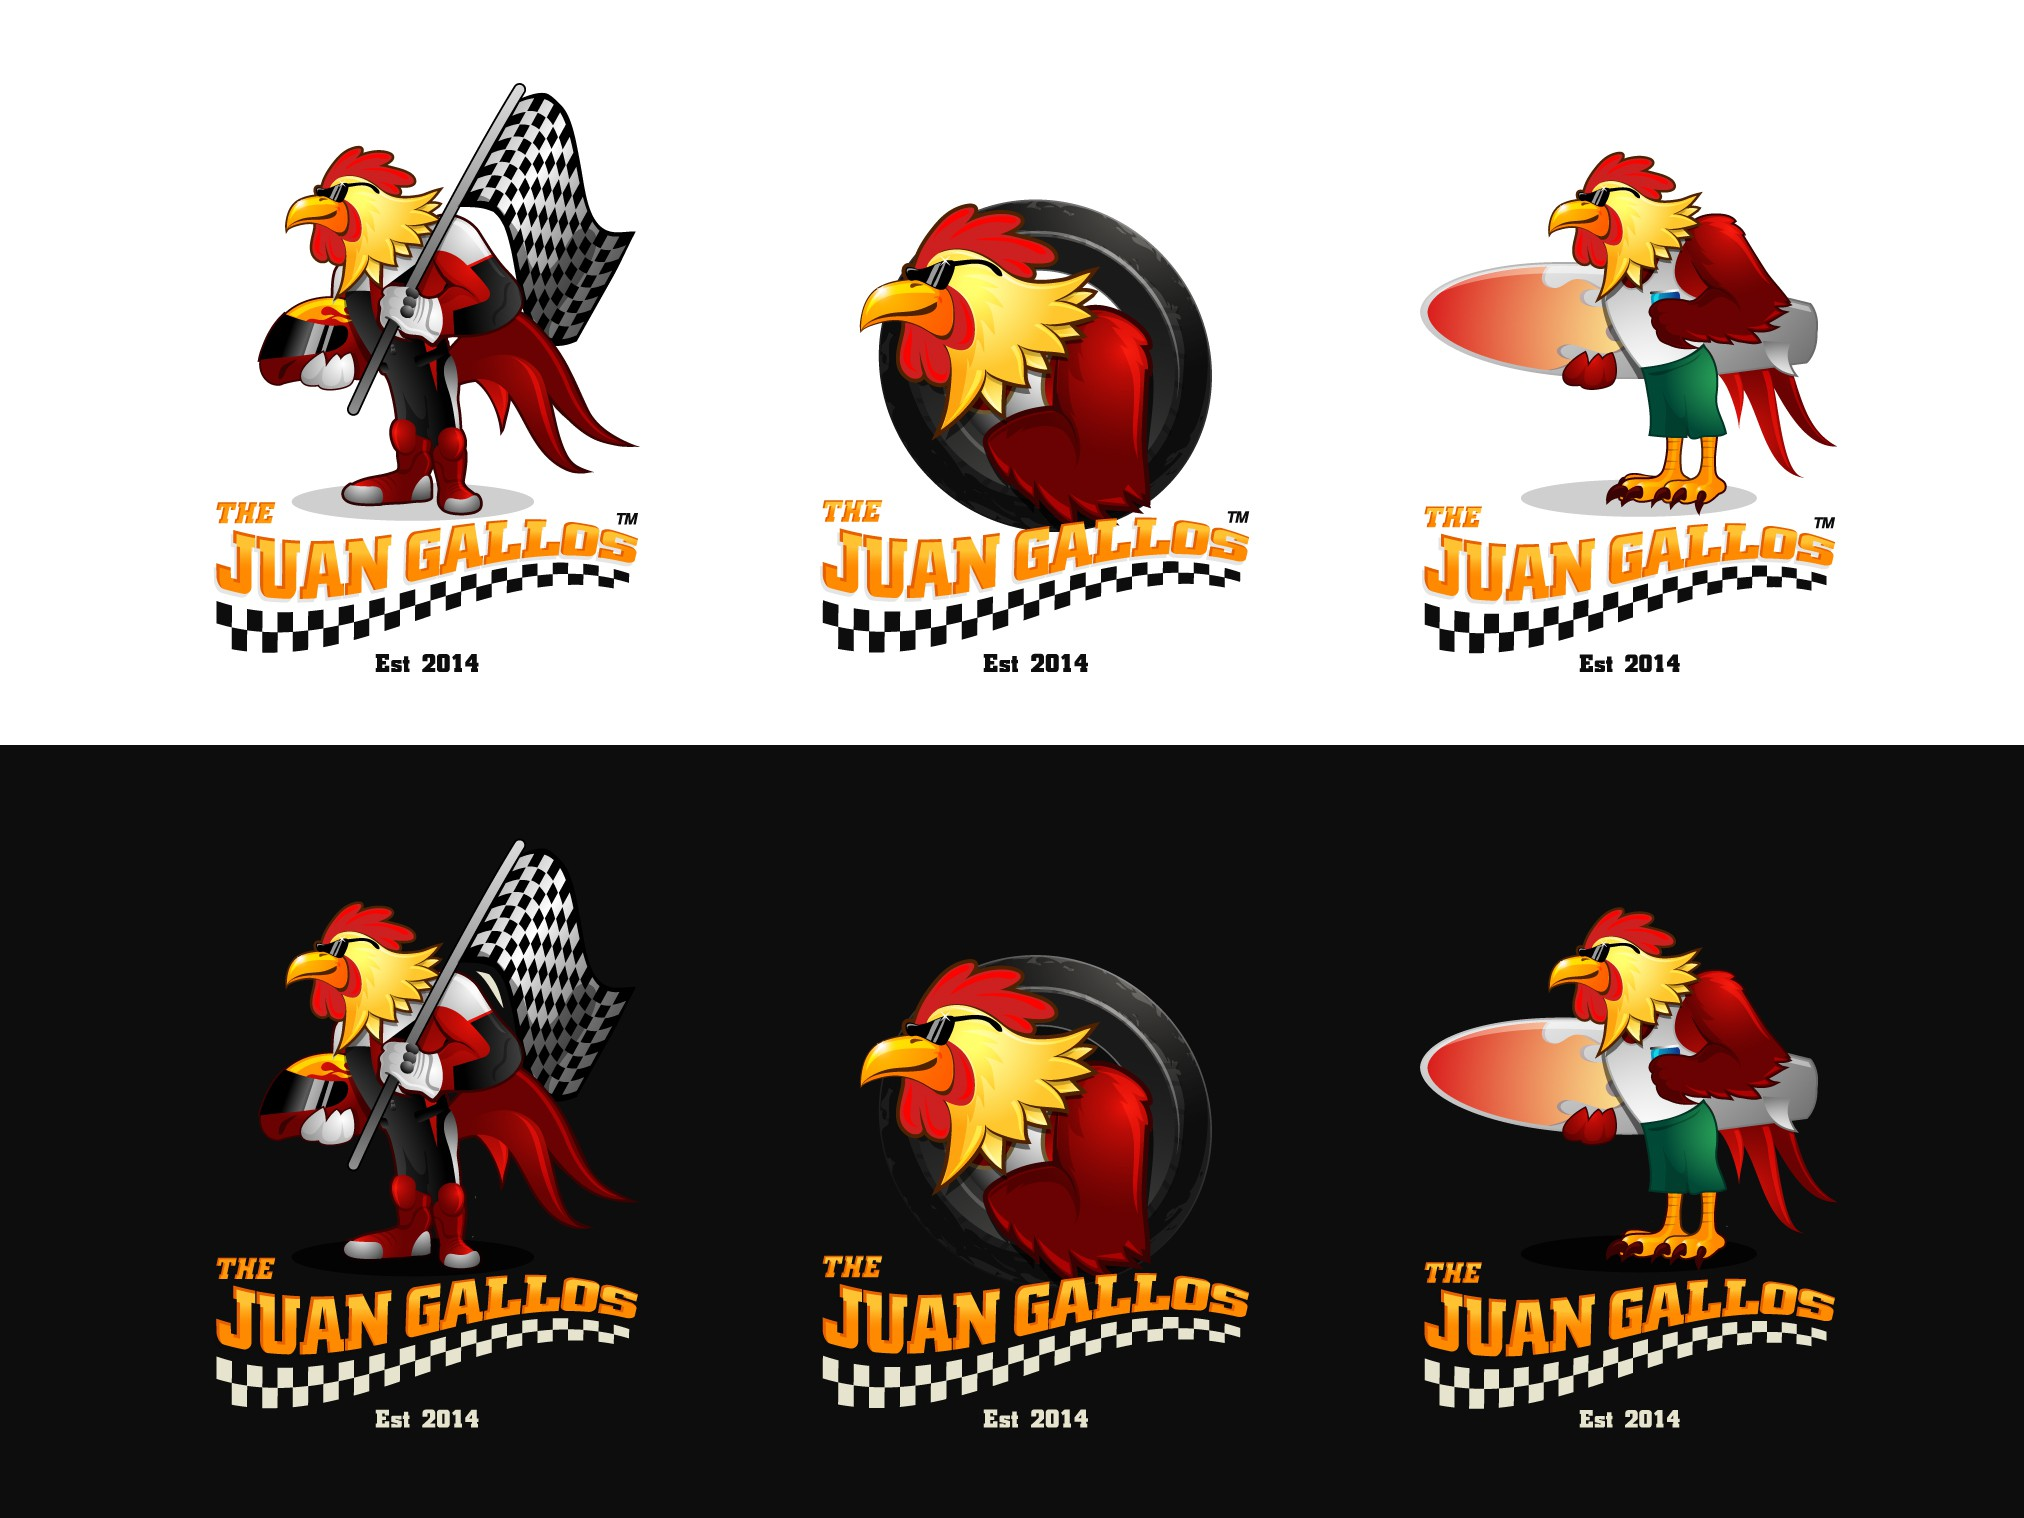 Create bold fun game cock character for an action sport clothing company